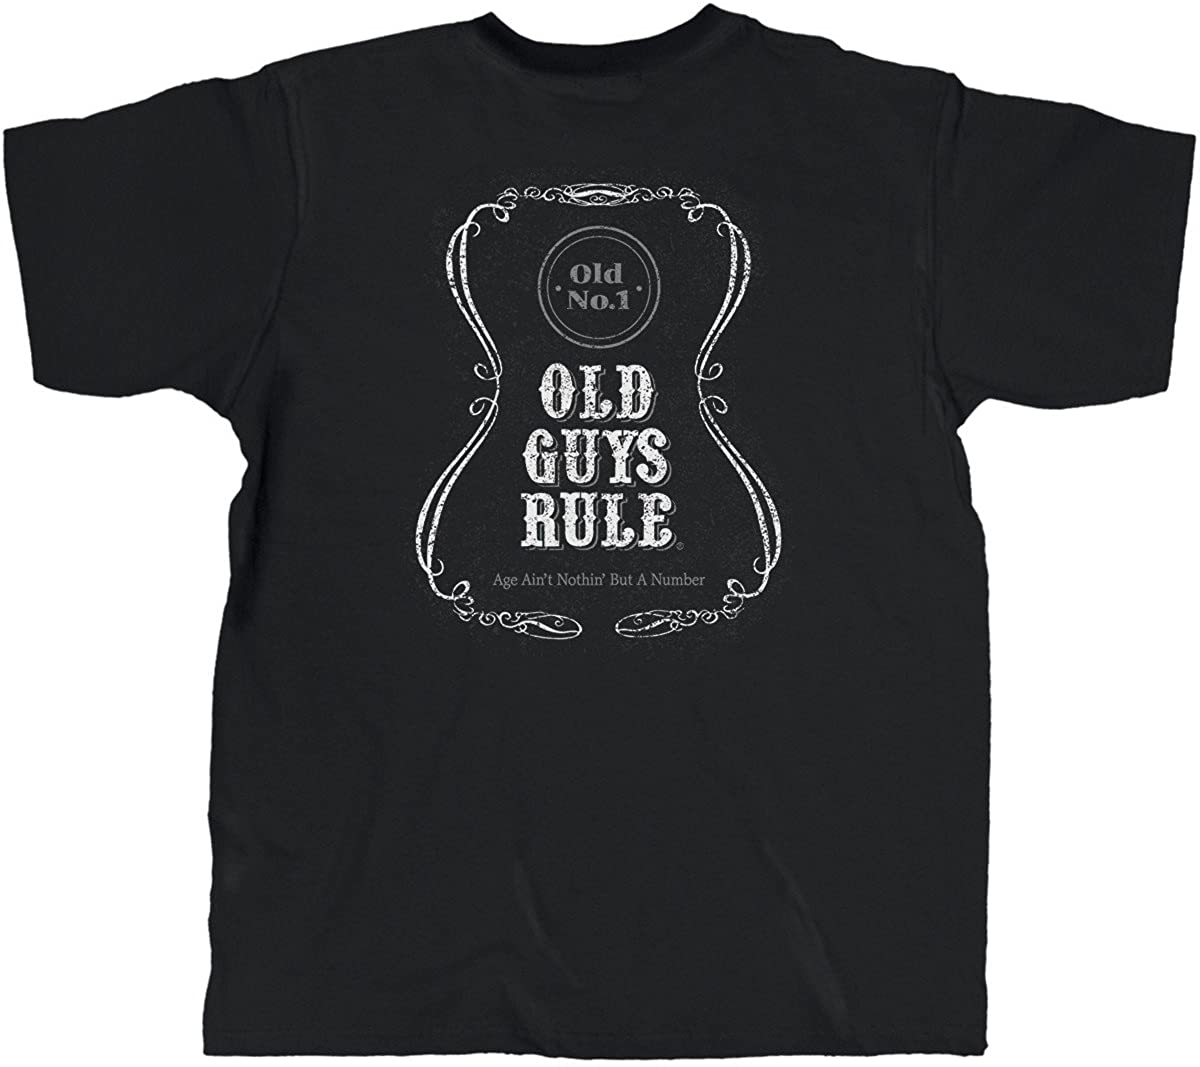 OLD GUYS RULE T Shirt for Men | Age Ain't Nothin' But A Number | Black